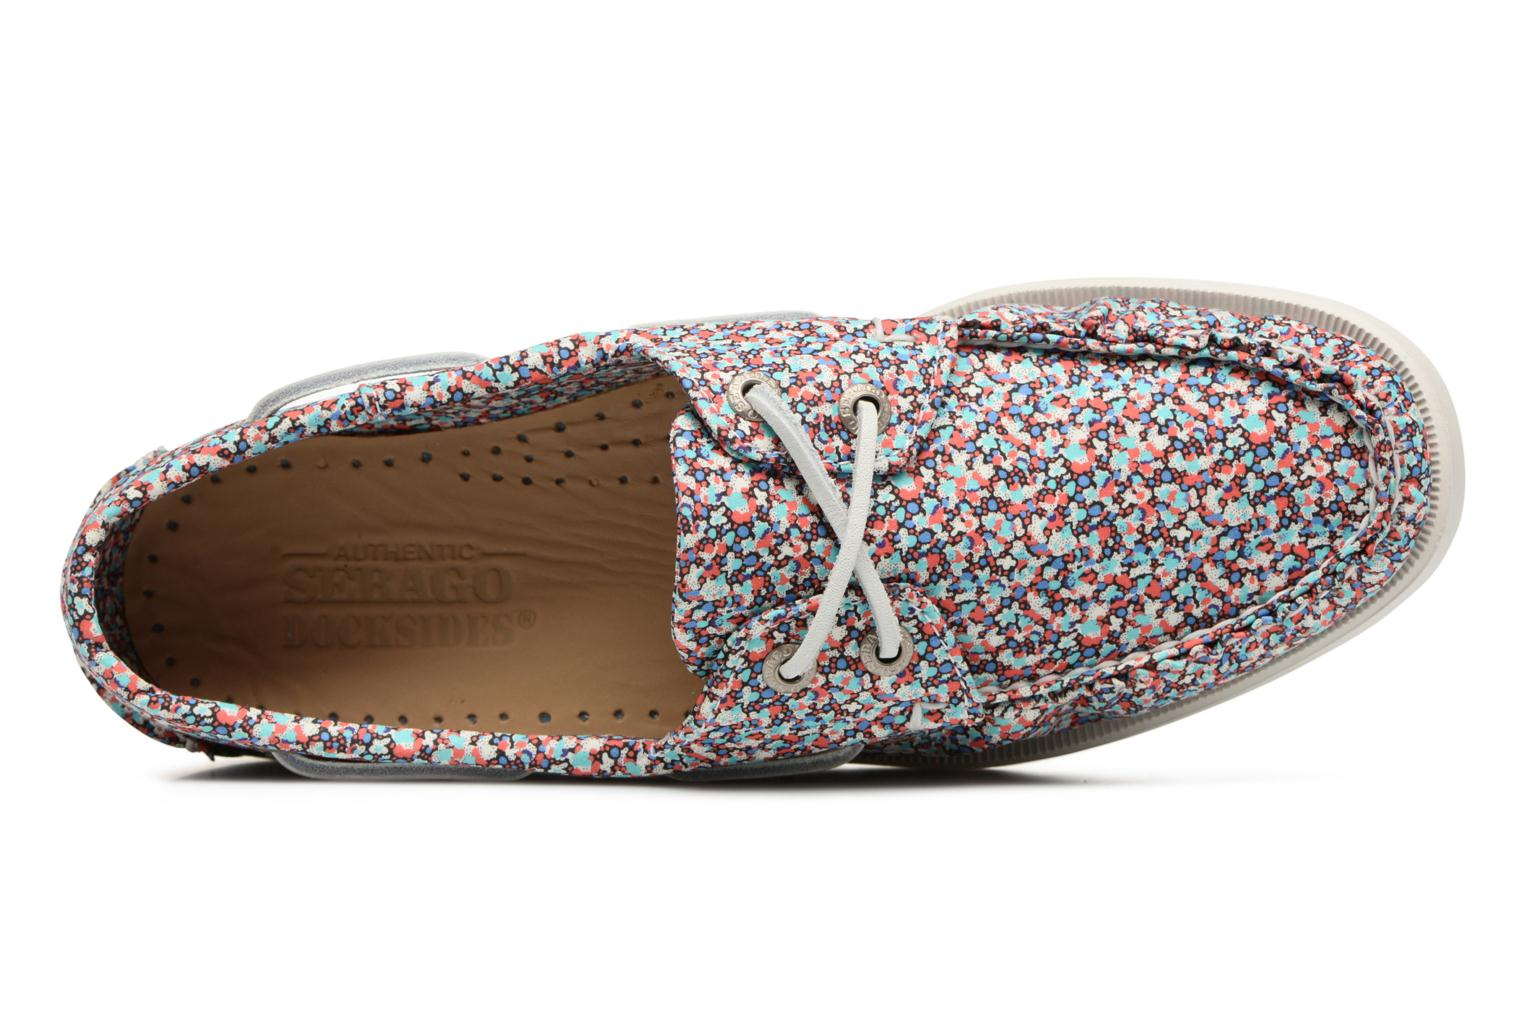 Lace-up shoes Sebago Docksides Liberty Multicolor view from the left